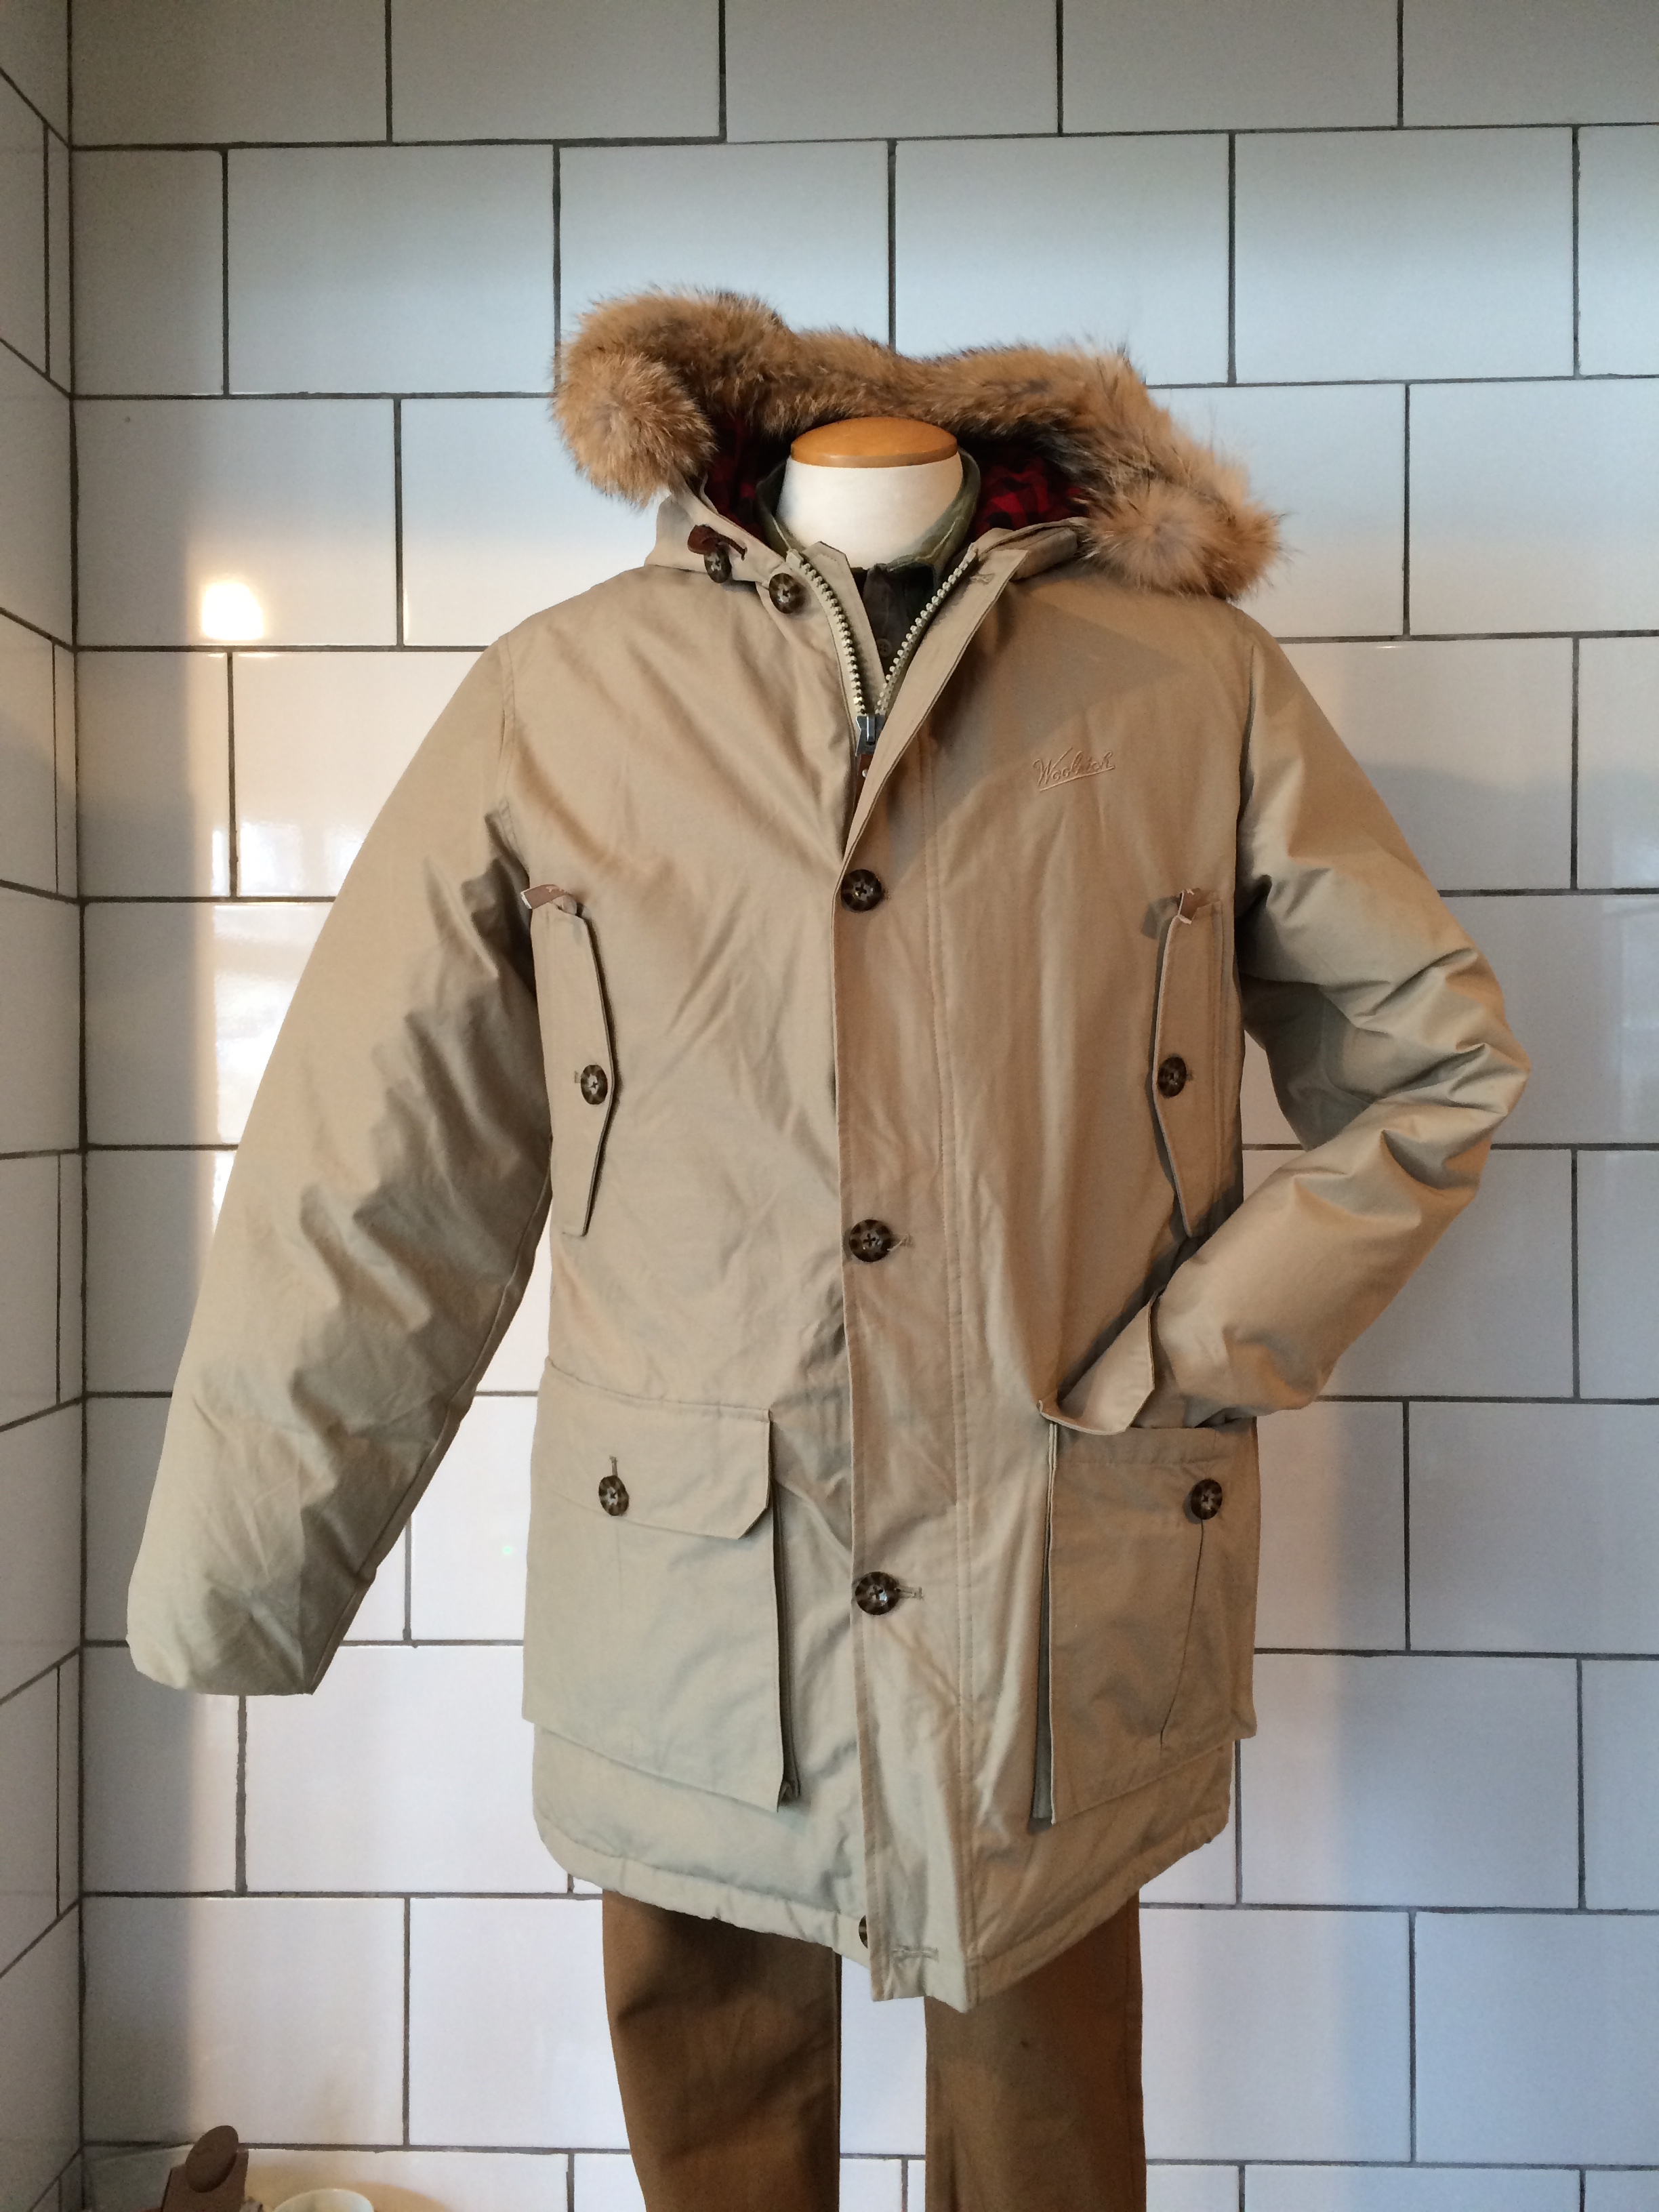 woolrich men 39 s arctic down parka from journeyman company. Black Bedroom Furniture Sets. Home Design Ideas